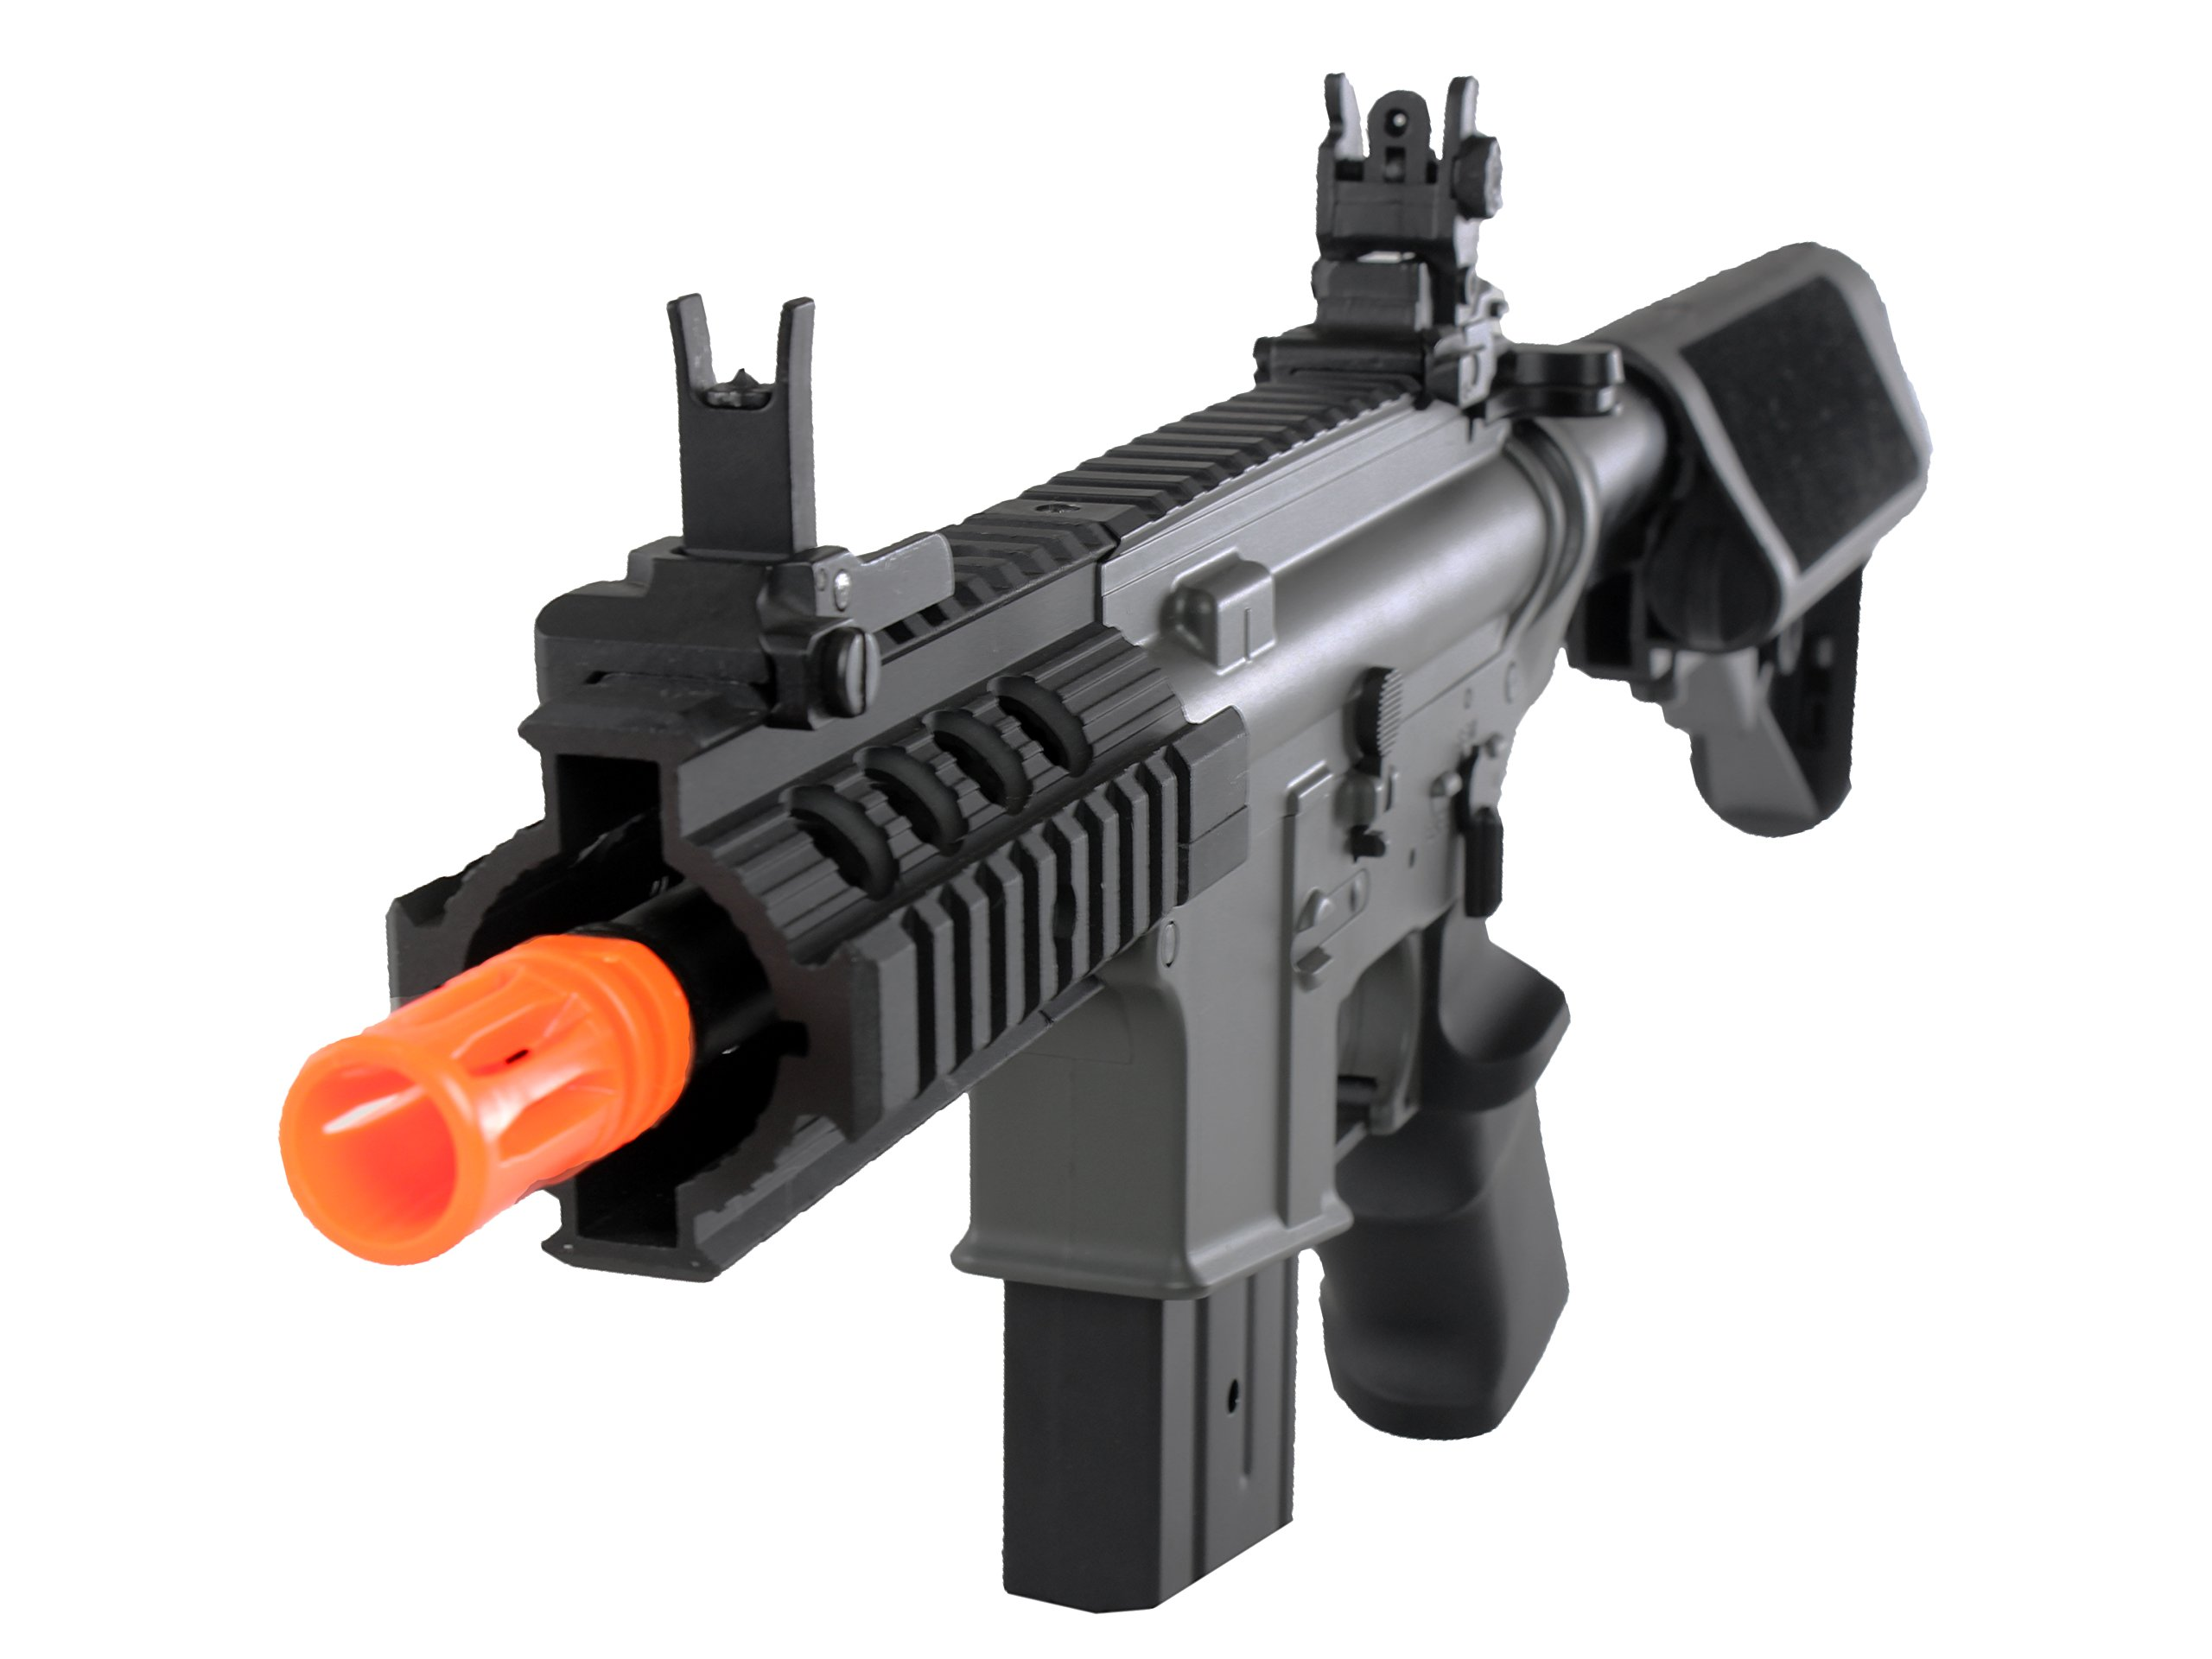 MetalTac Electric Airsoft Gun M4 Stubby CQB JG-F6632 with Rail Mounting System, Metal Gearbox Version 2, Full Auto AEG, Upgraded Powerful Spring 380 Fps with .20g BBs